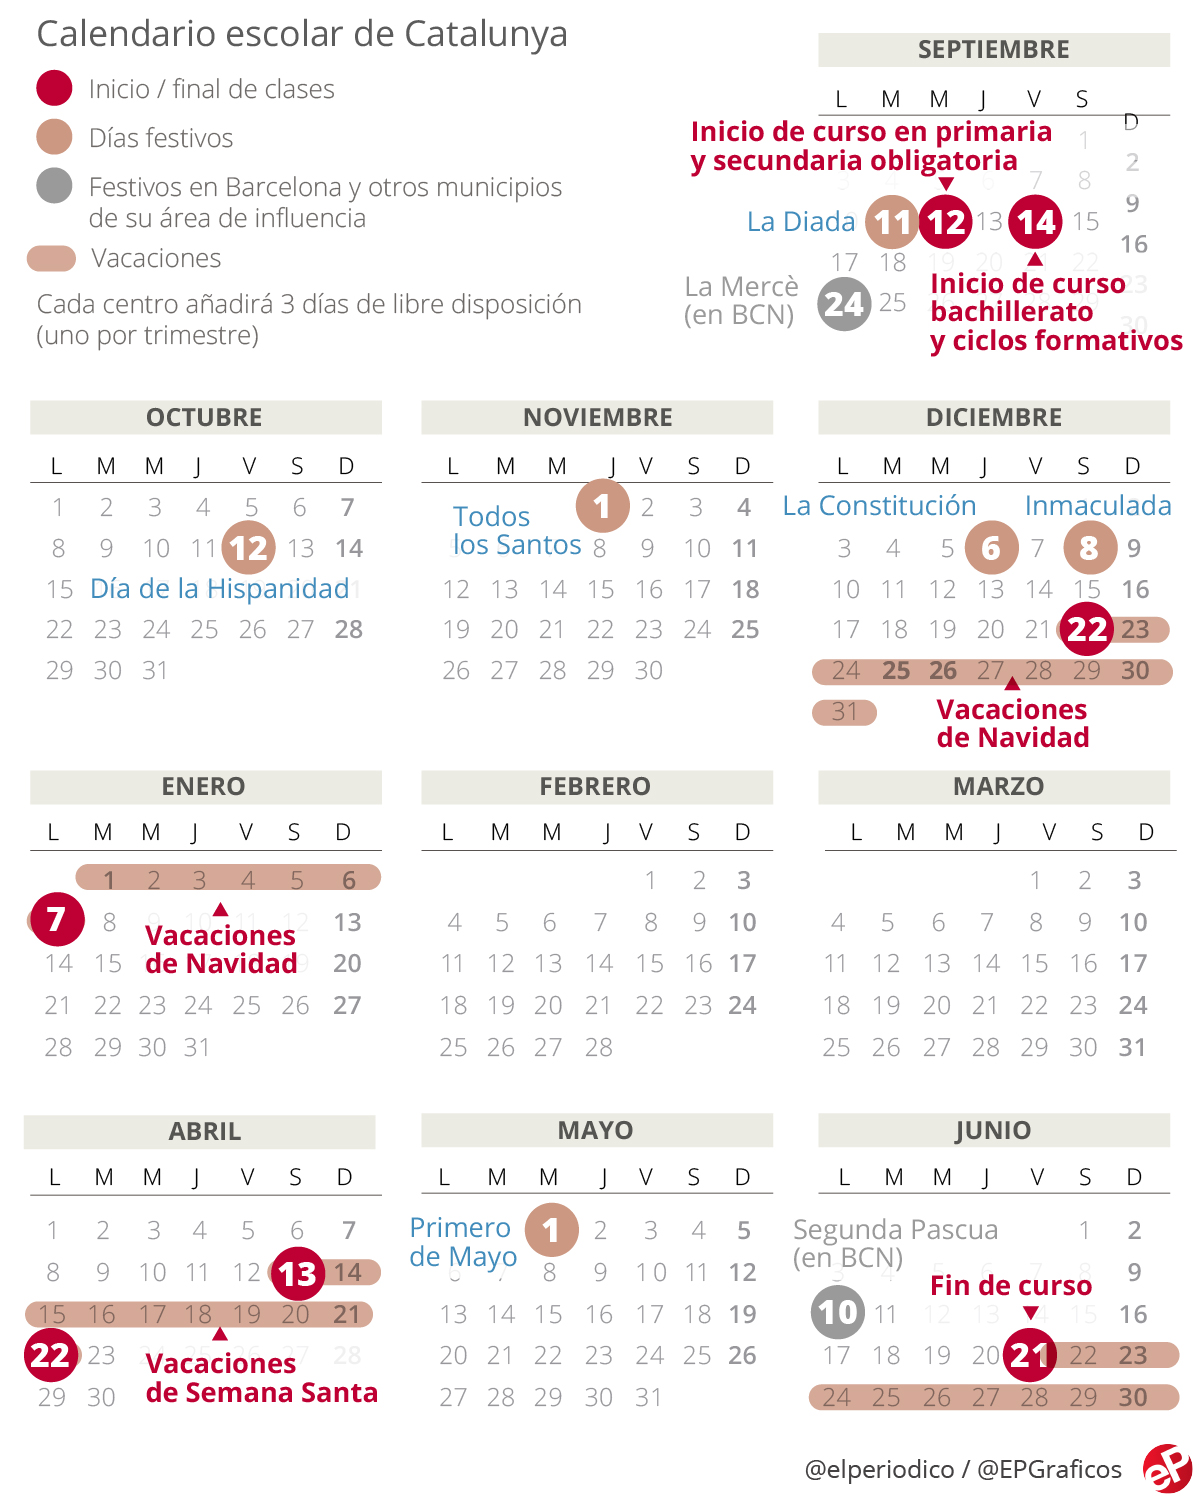 Calendario 2019 Por Semanas.Calendario Escolar De Catalunya 2018 2019